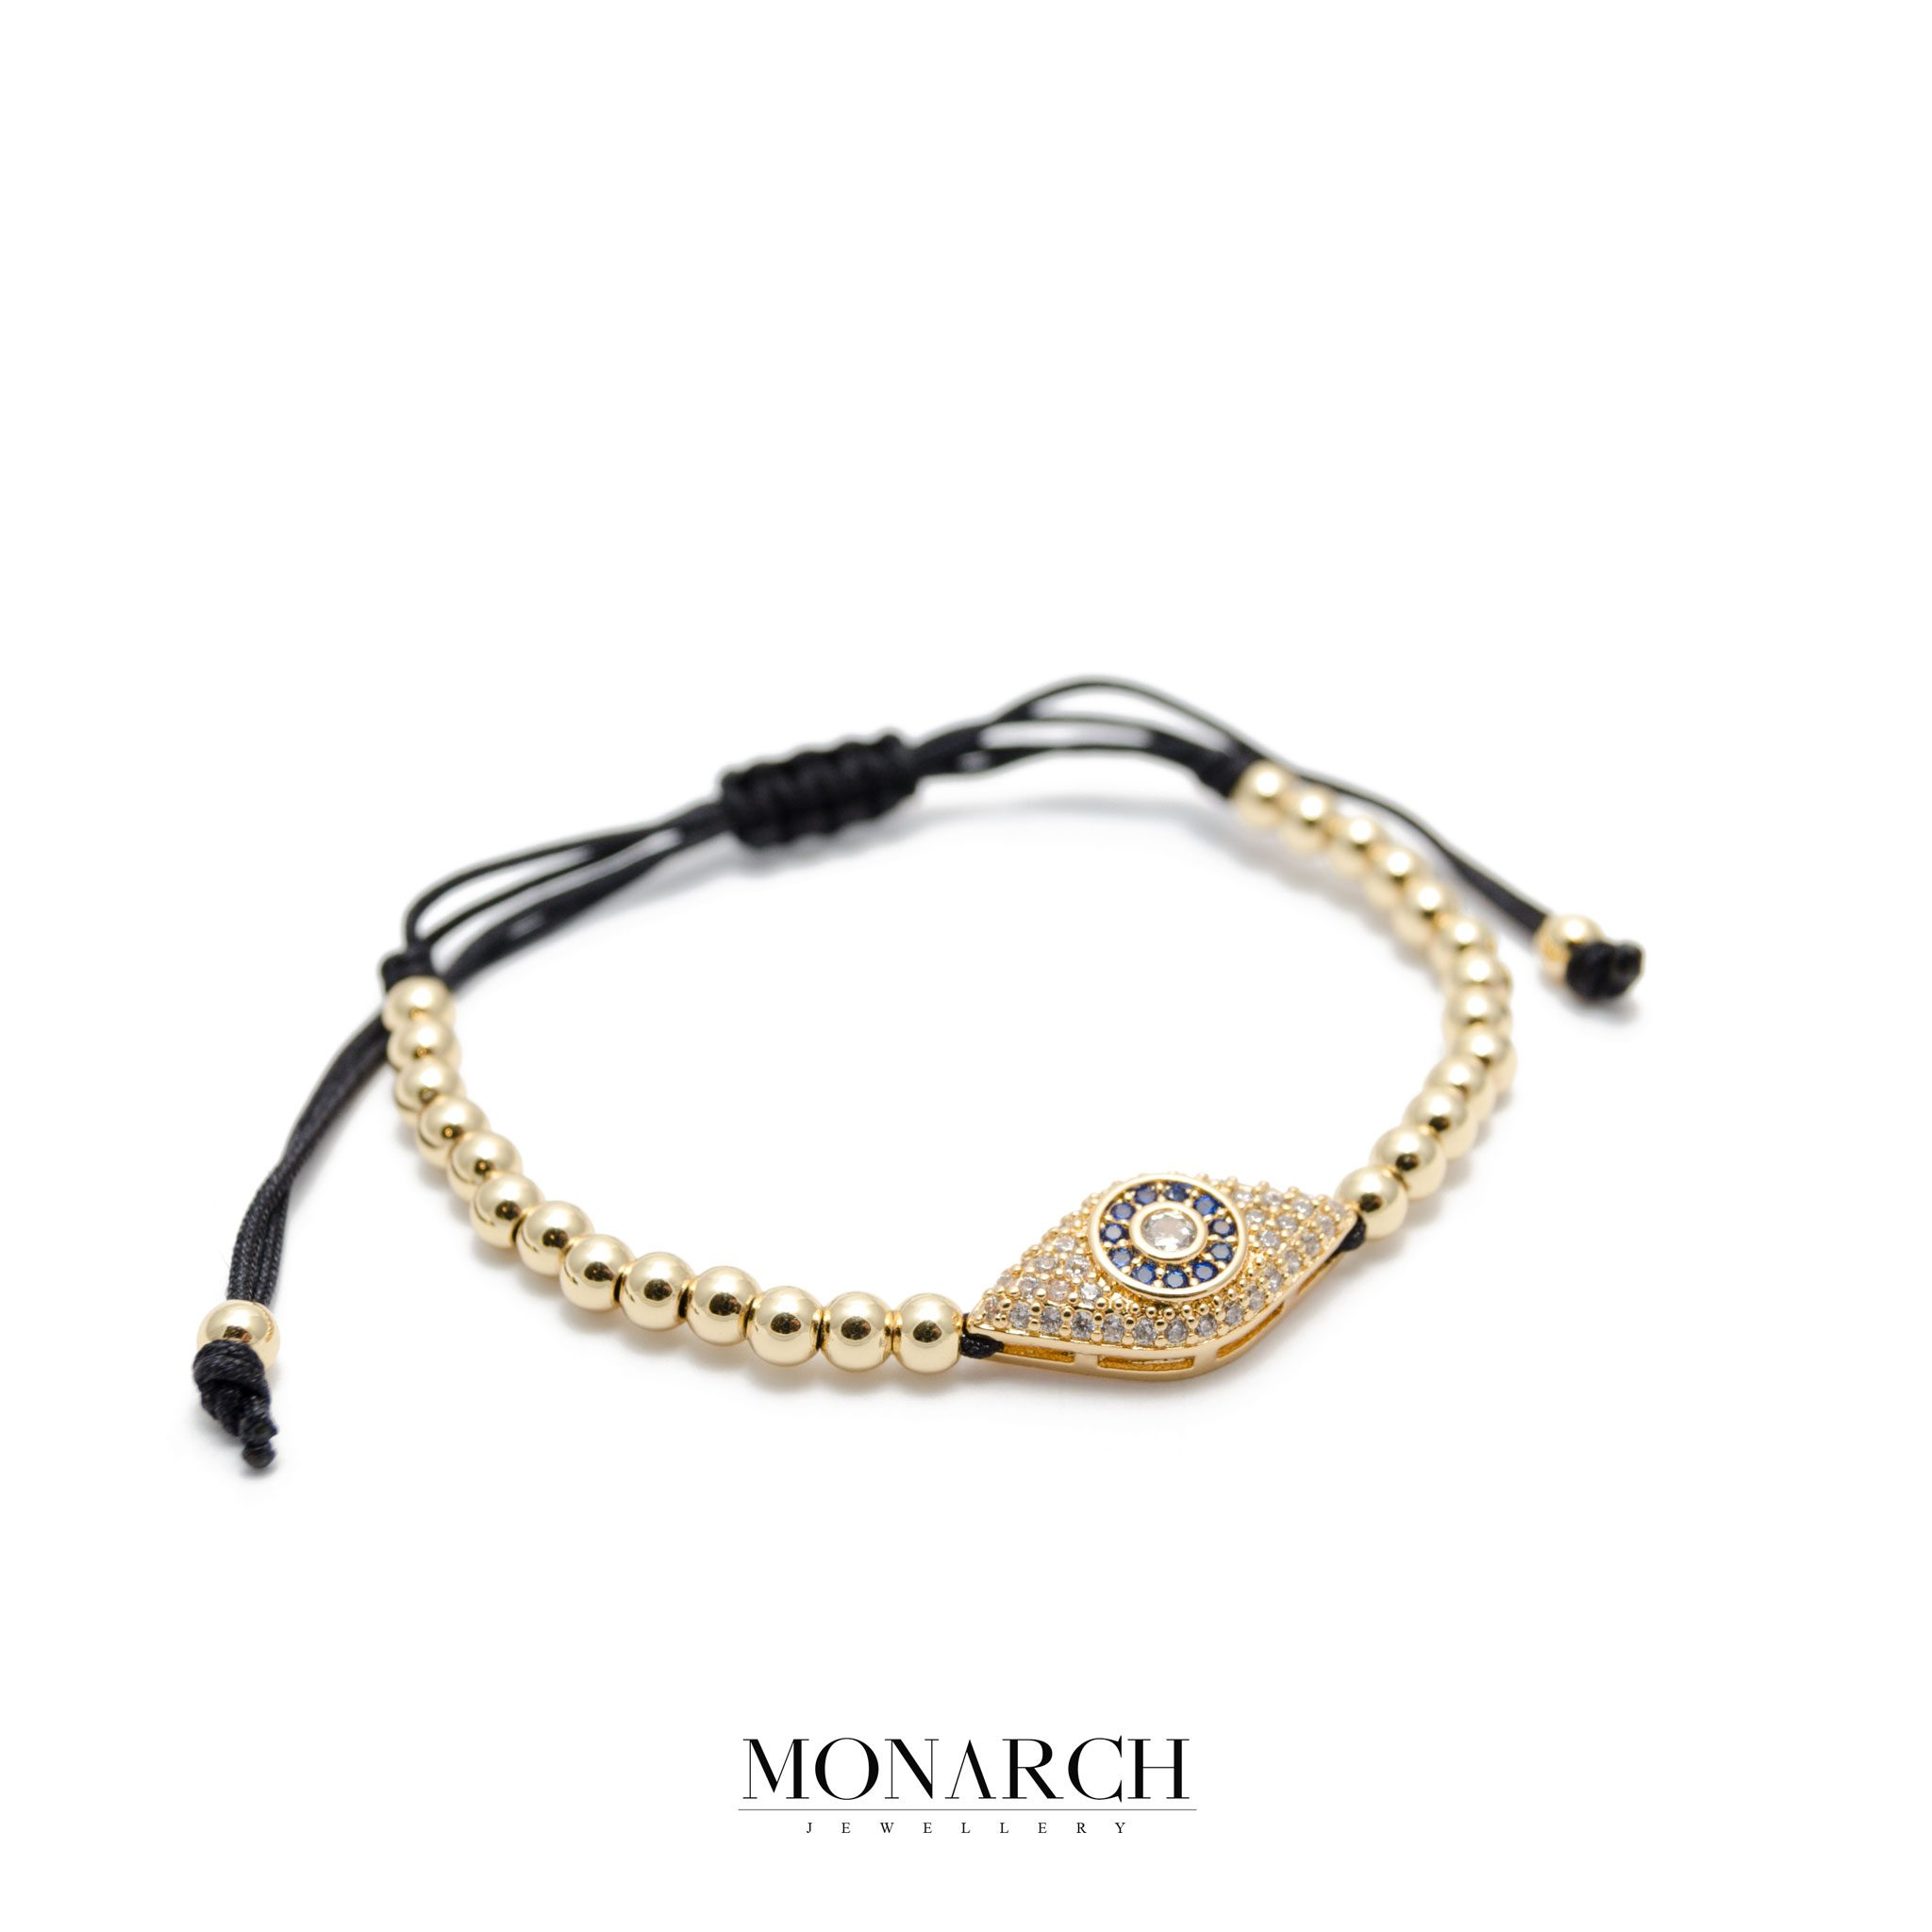 f41286cc07643 Monarch Jewellery 24K Gold Evil Eye Luxury Macrame Bracelet